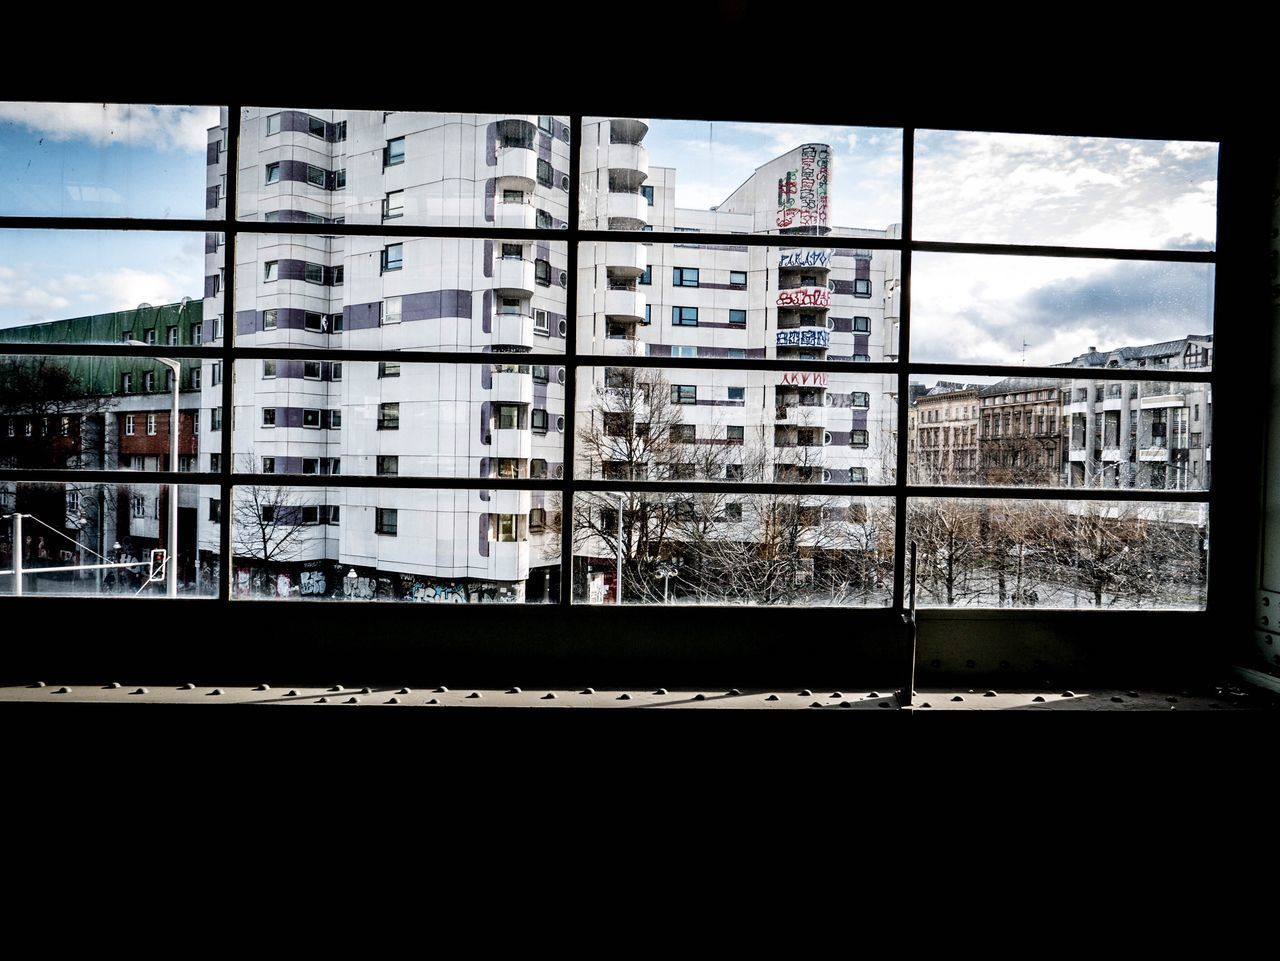 Everydaygermany Window Built Structure Architecture Building Exterior Rail Transportation Railroad Track Sky Day Transportation City No People Residential Building Outdoors Public Transportation